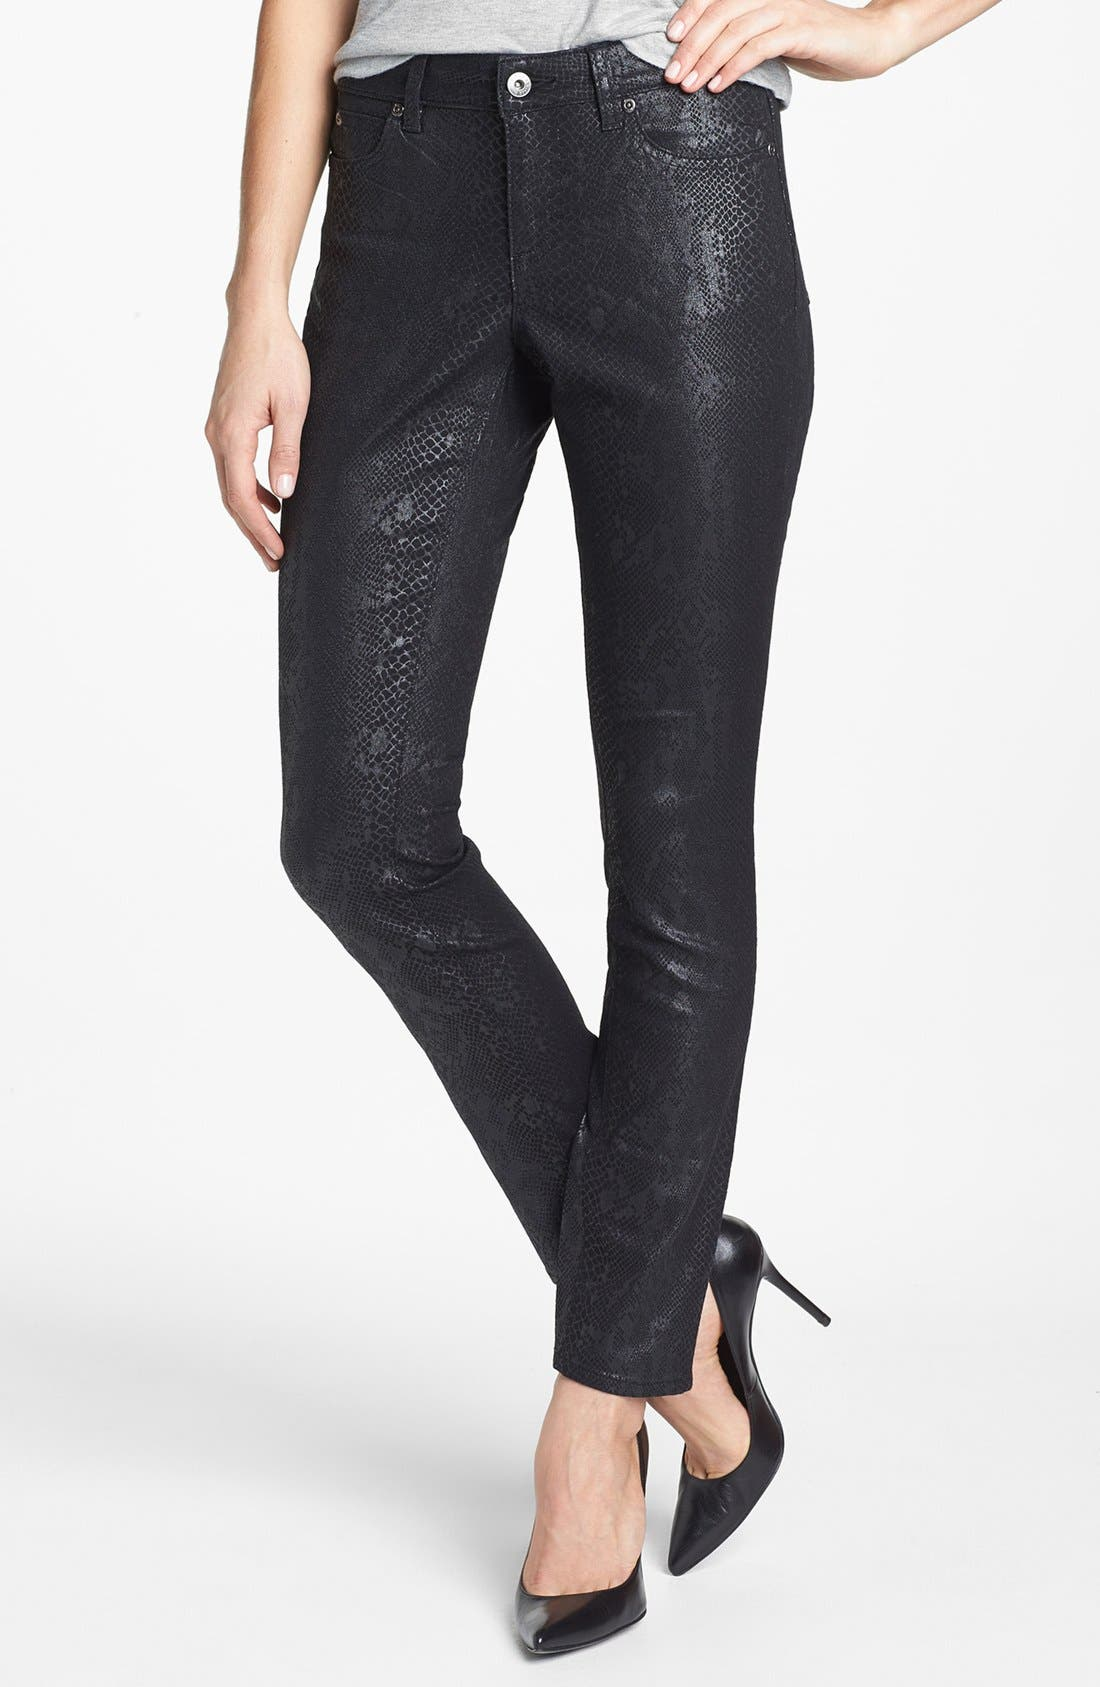 Alternate Image 1 Selected - Two by Vince Camuto Foiled Snakeskin Print Skinny Jeans